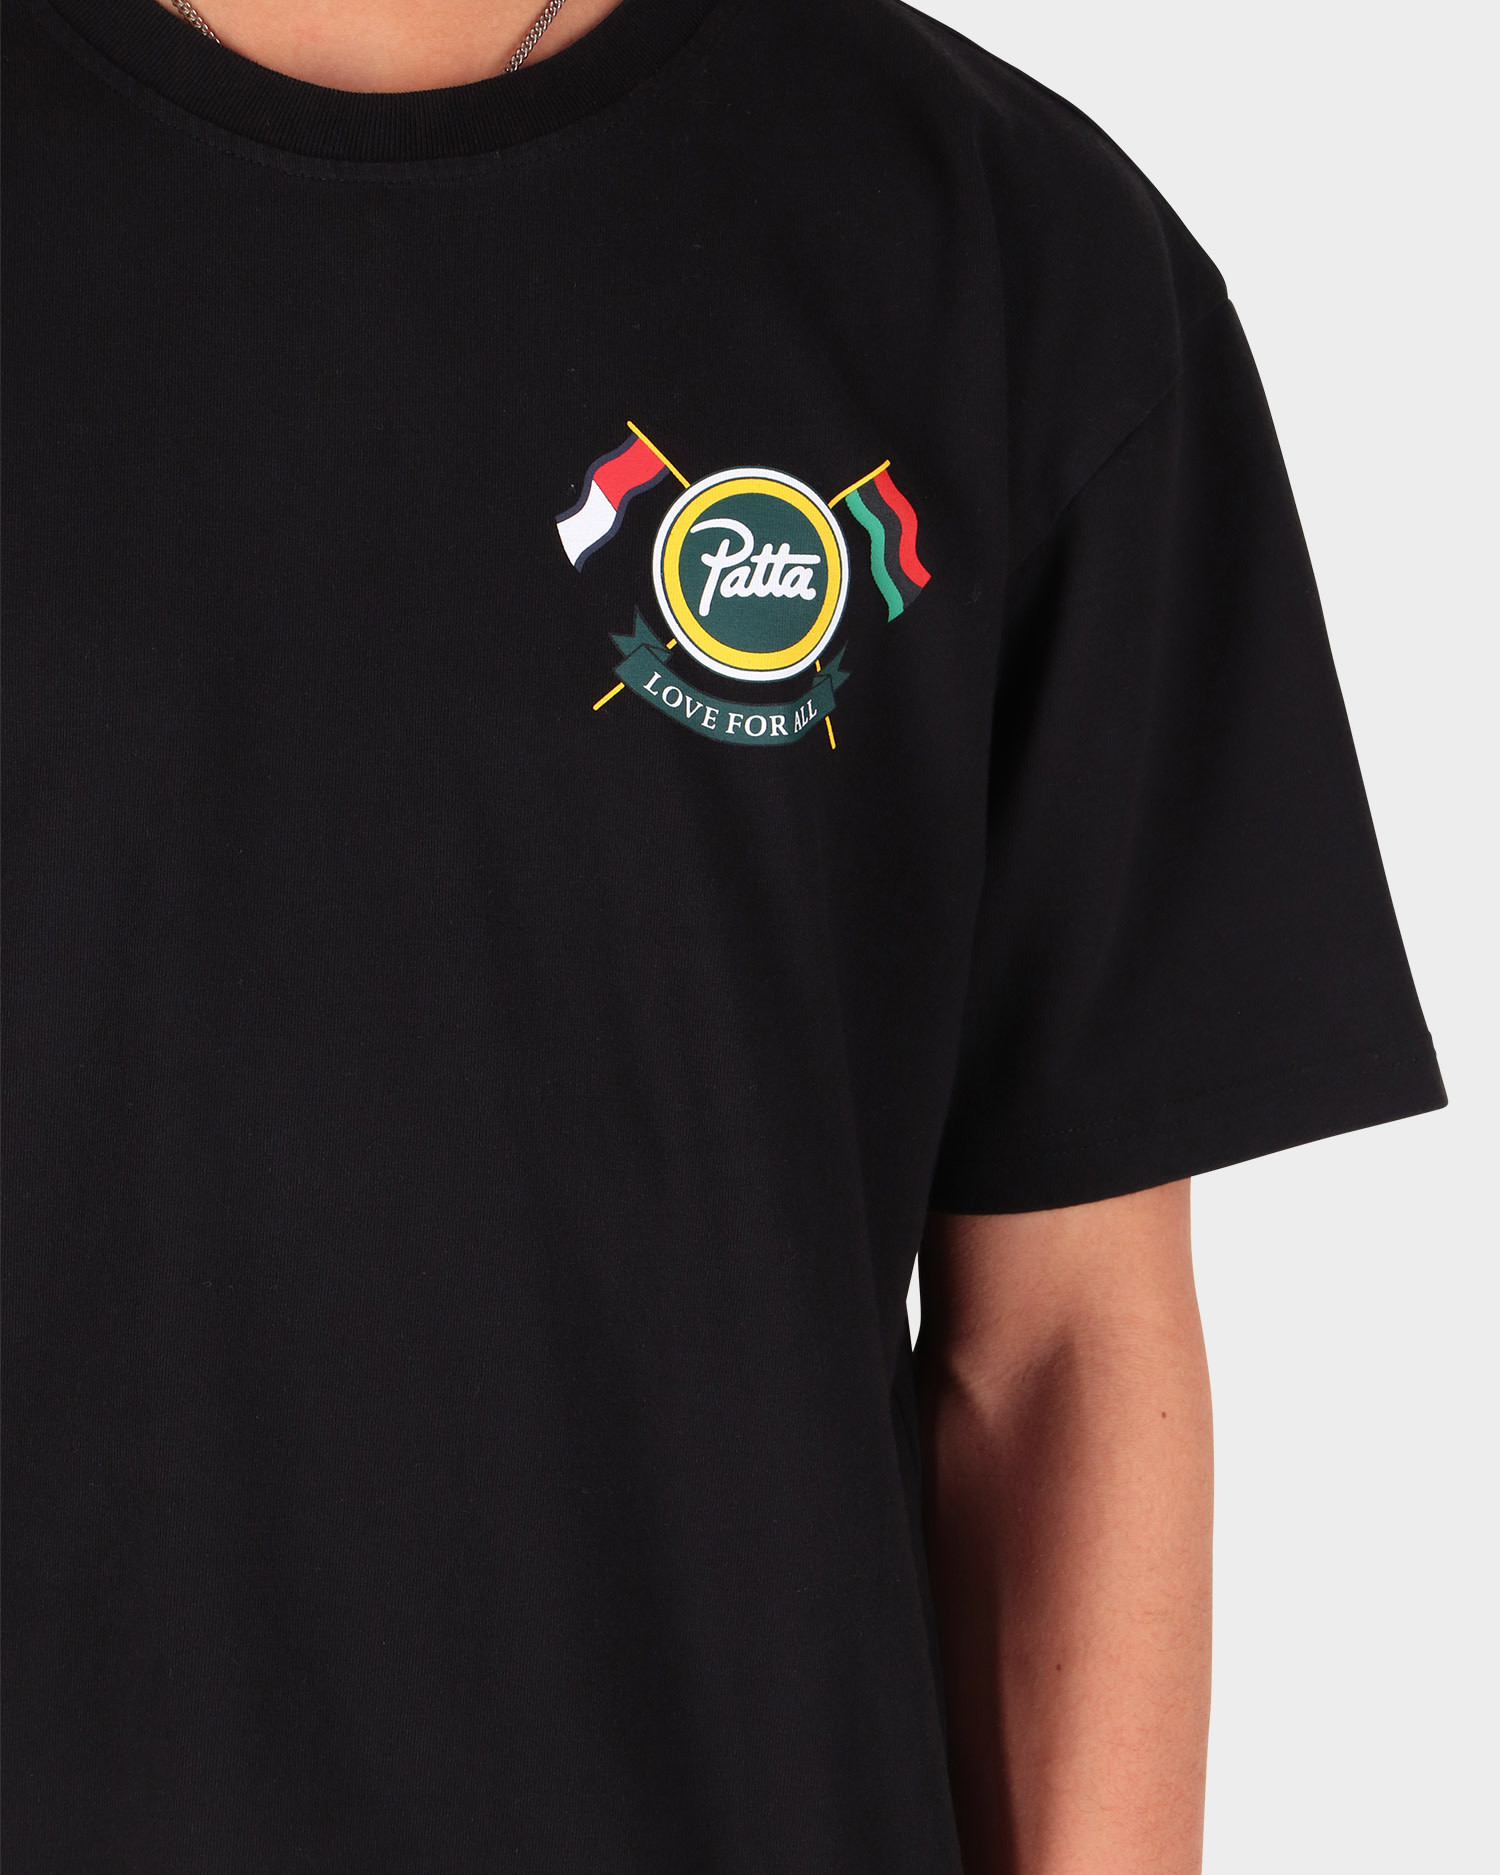 Patta x Tommy Community Tee Black